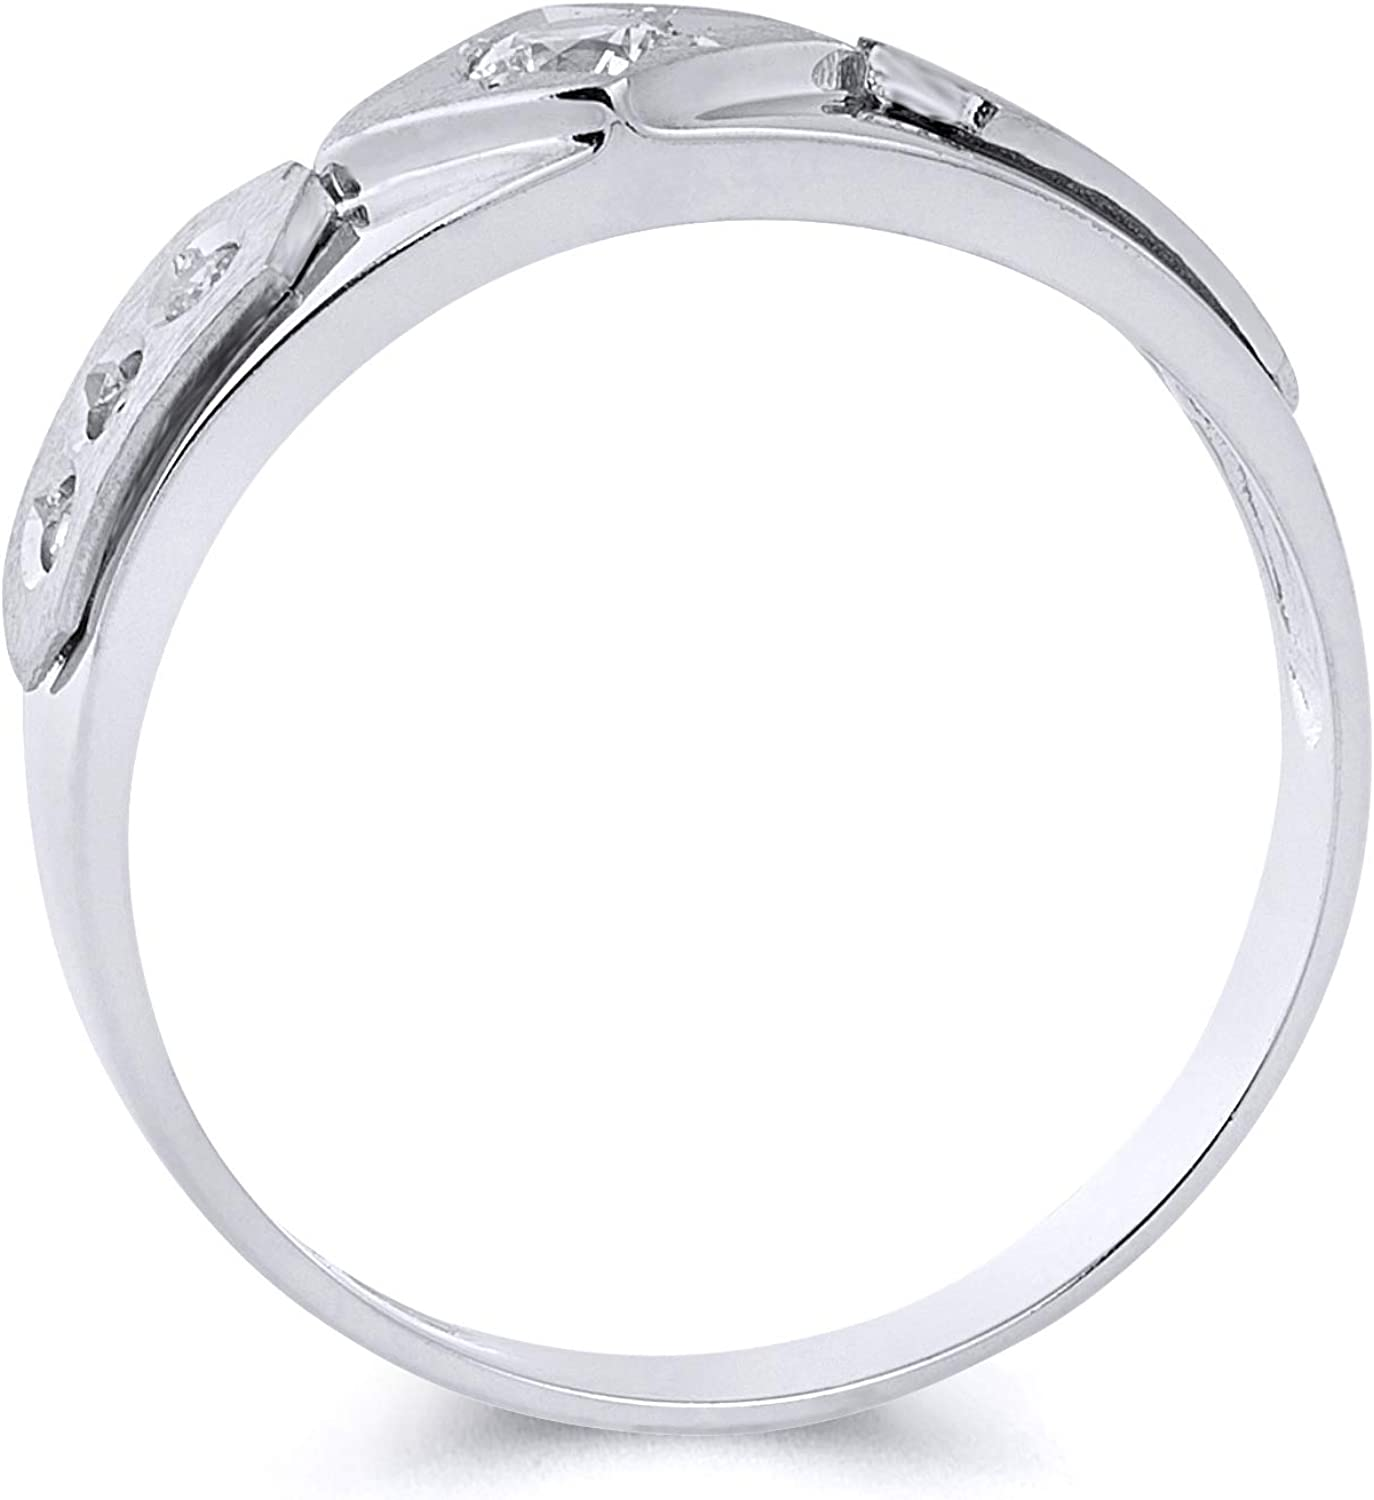 Wellingsale Mens Solid 14k White Gold Polished CZ Cubic Zirconia Wedding Band